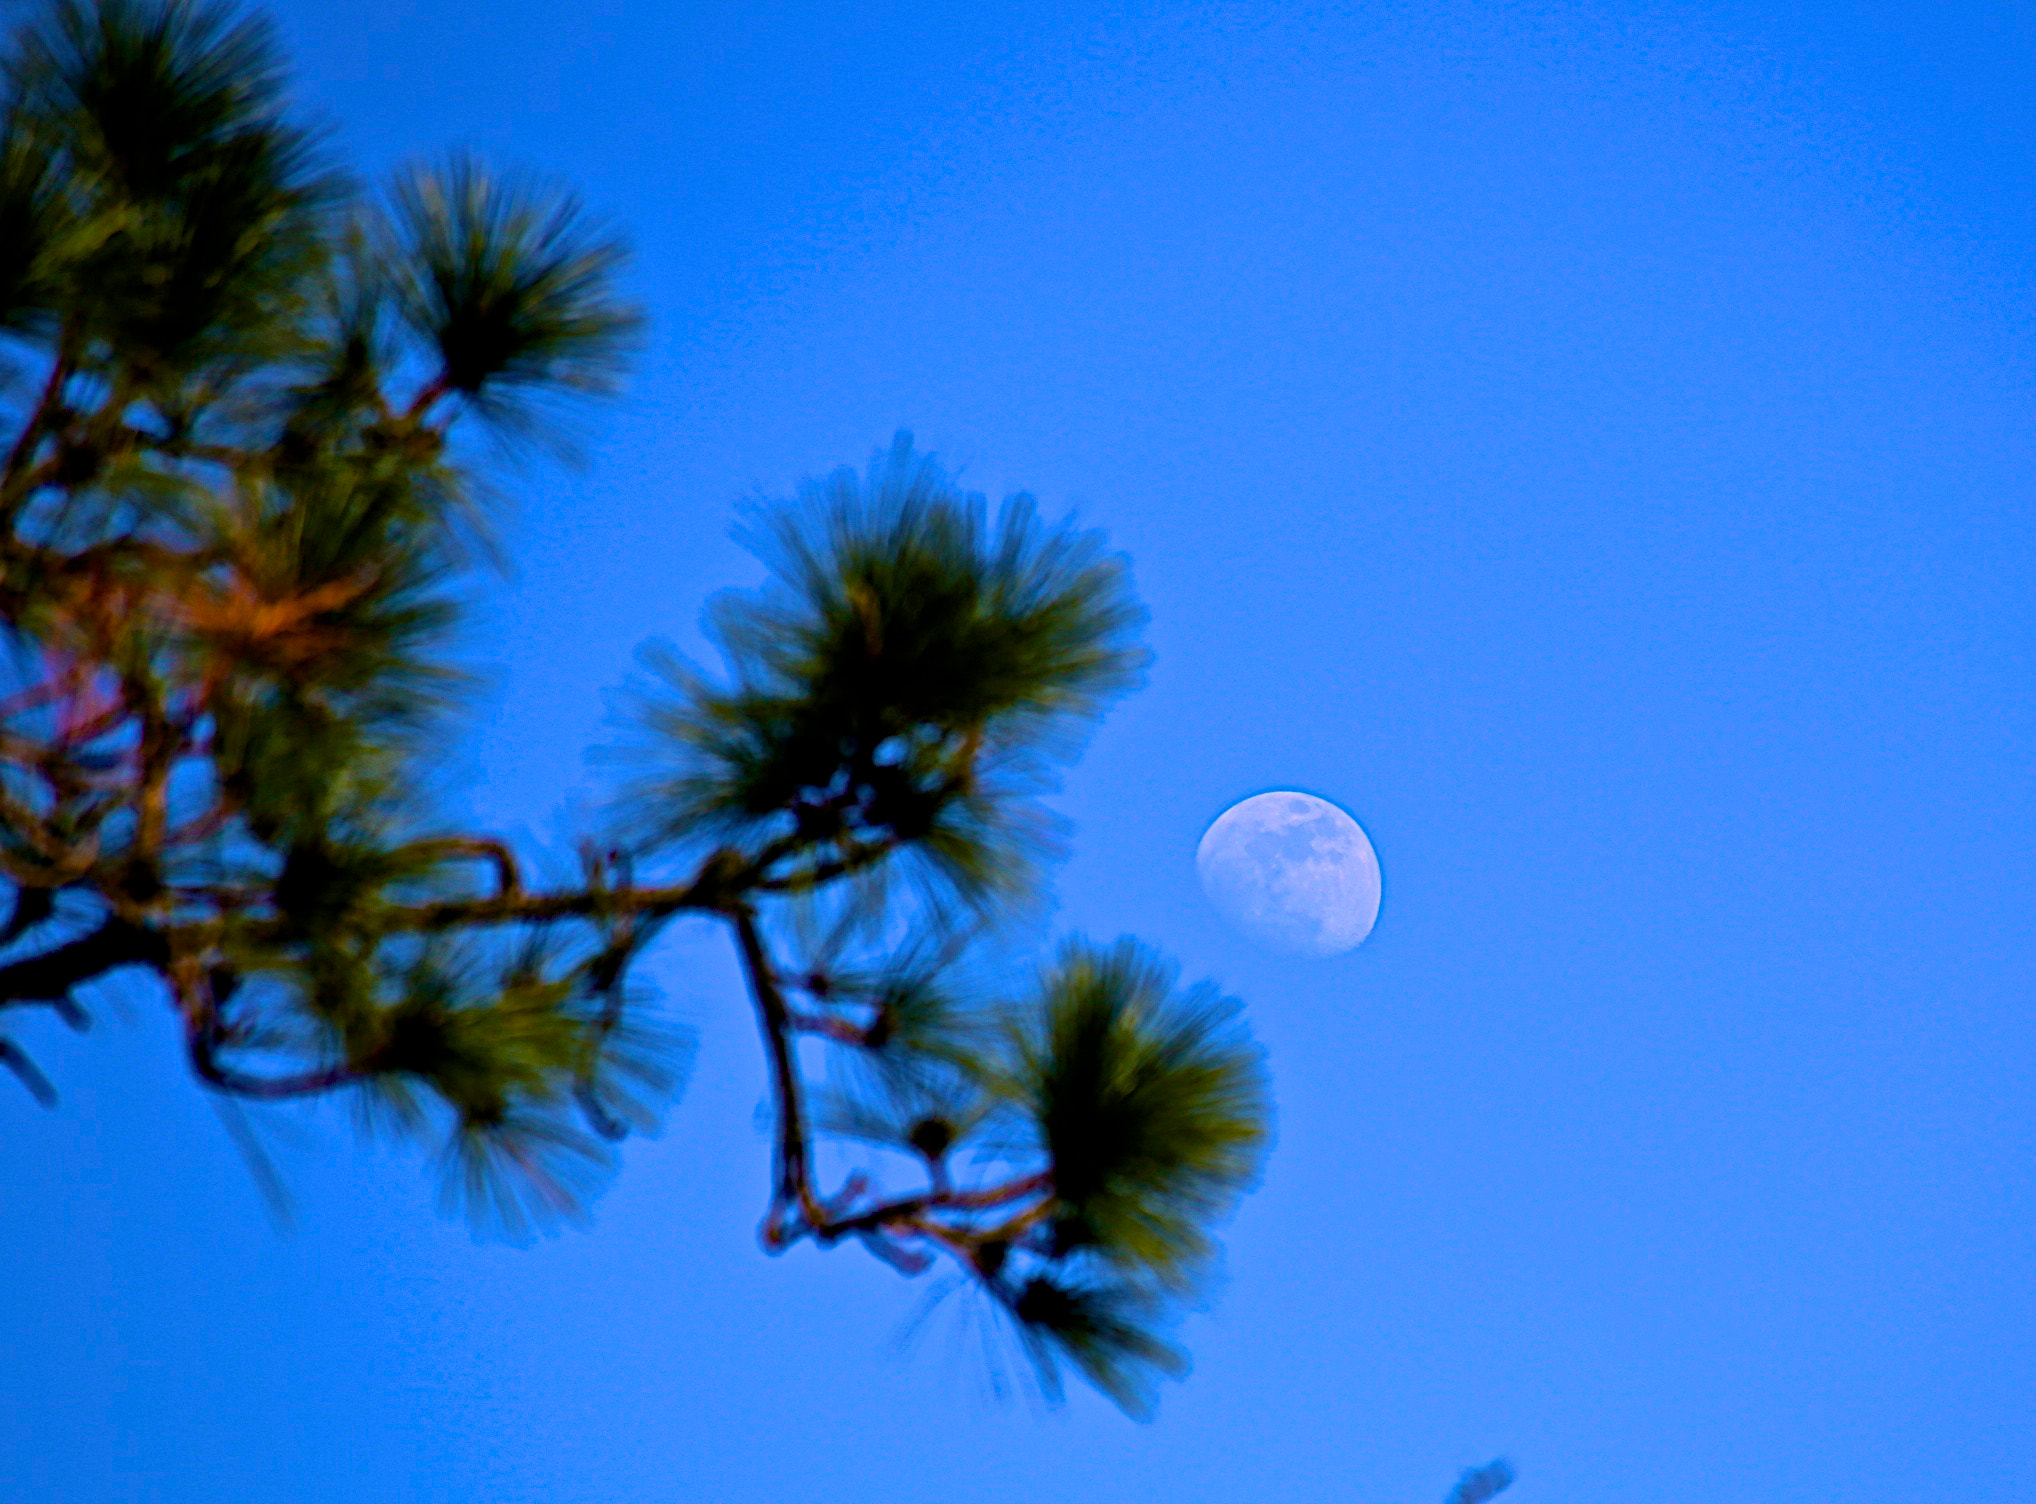 Photograph Moon in Pines by James Groce on 500px